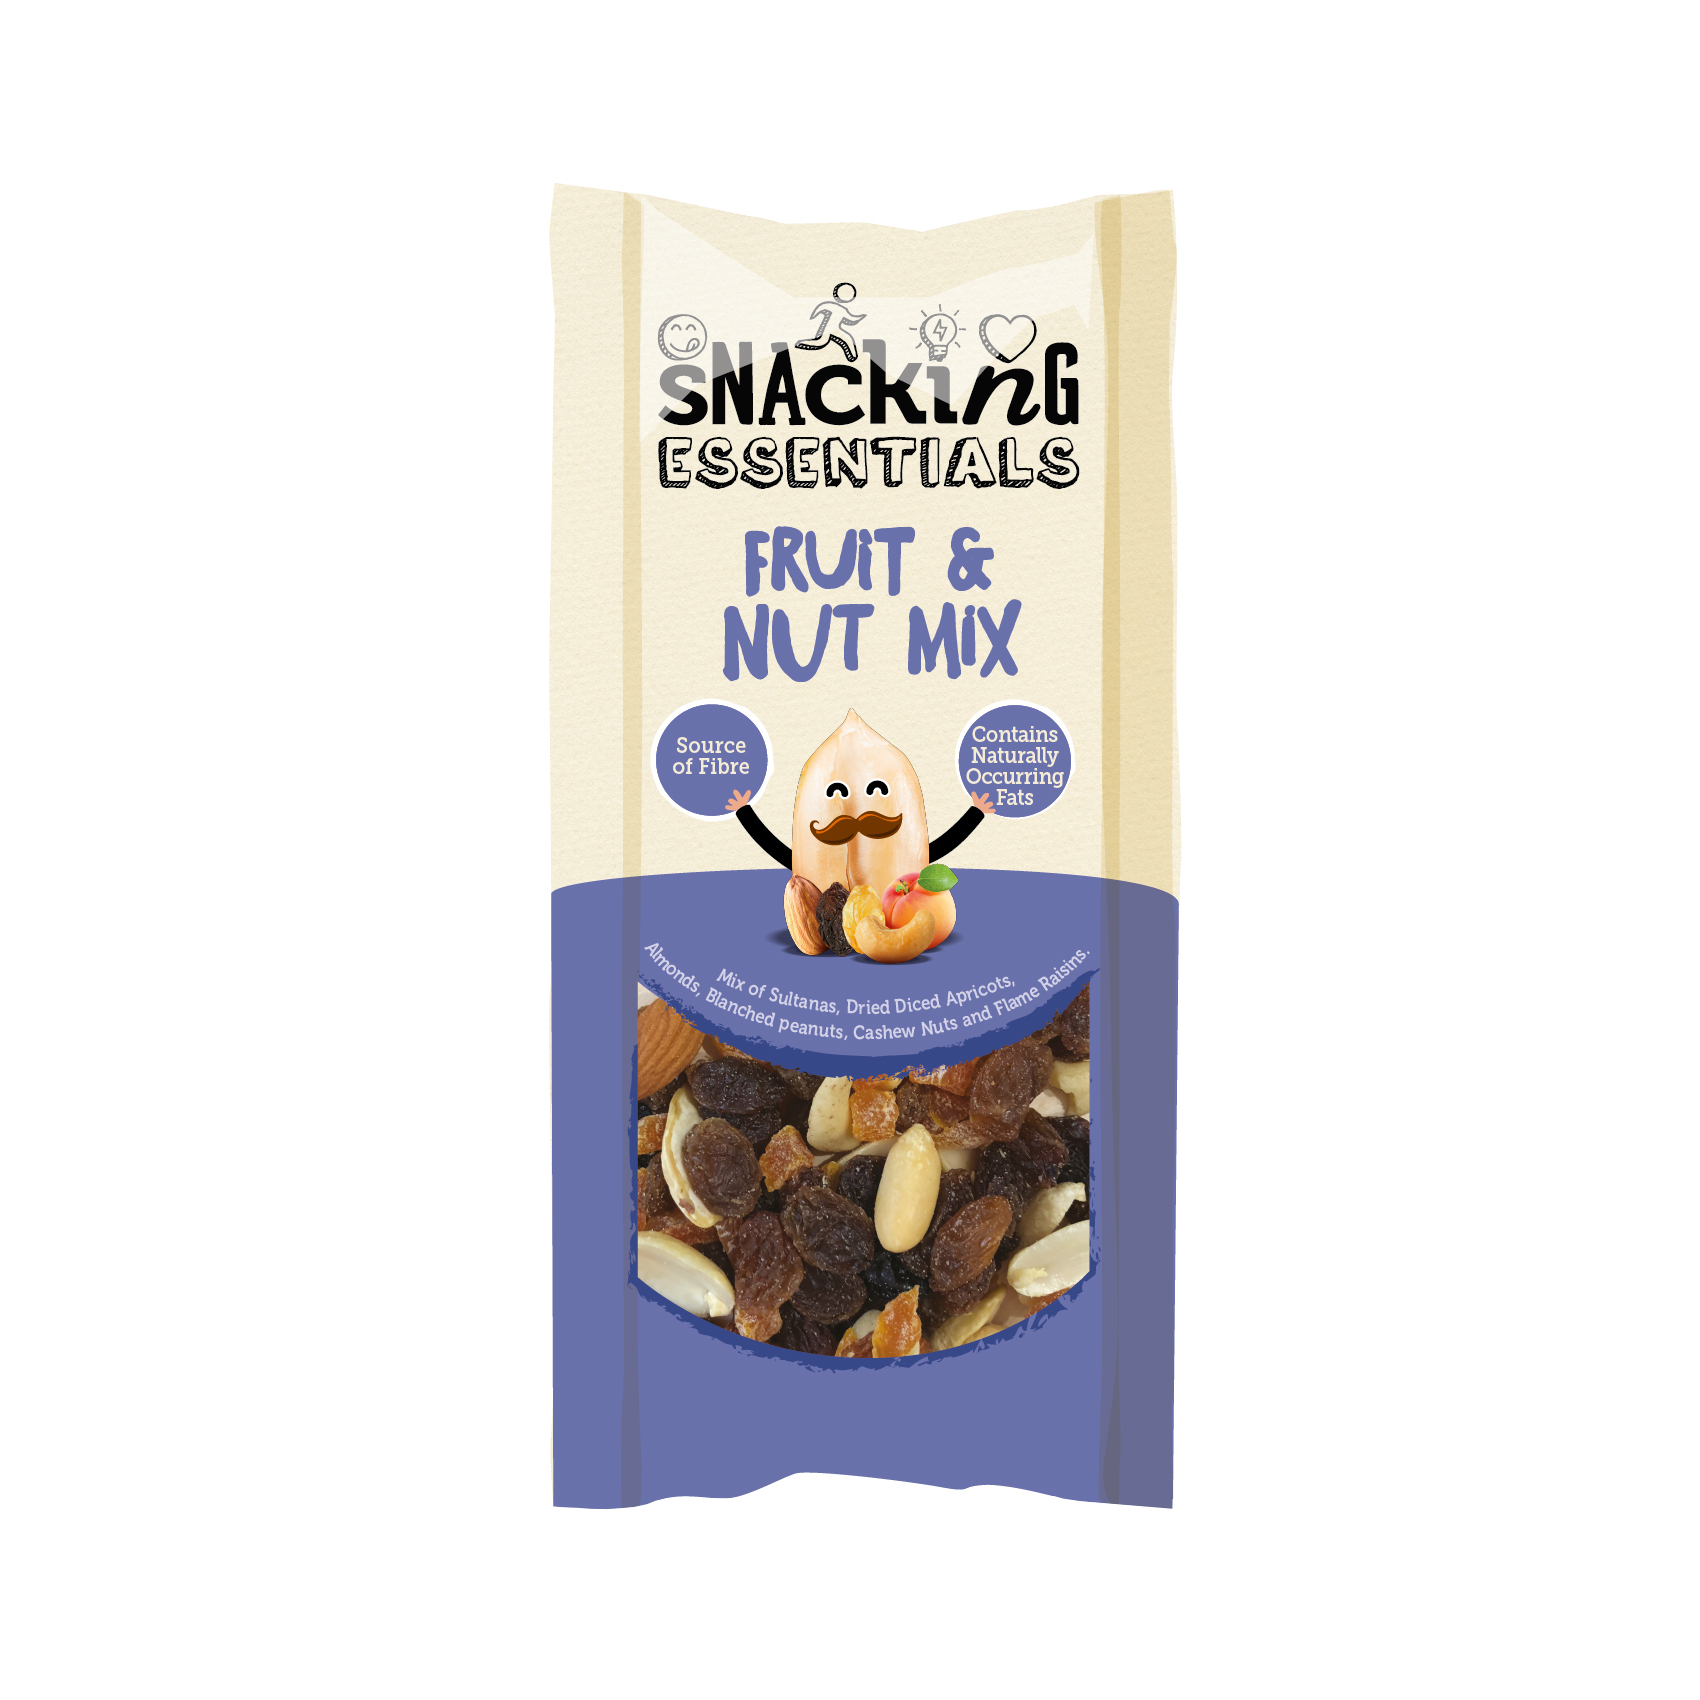 Breakfast / Snacks Snacking Essentials Fruit & Nut Mix Shot Packs 40g Ref 508440 [Pack 16]